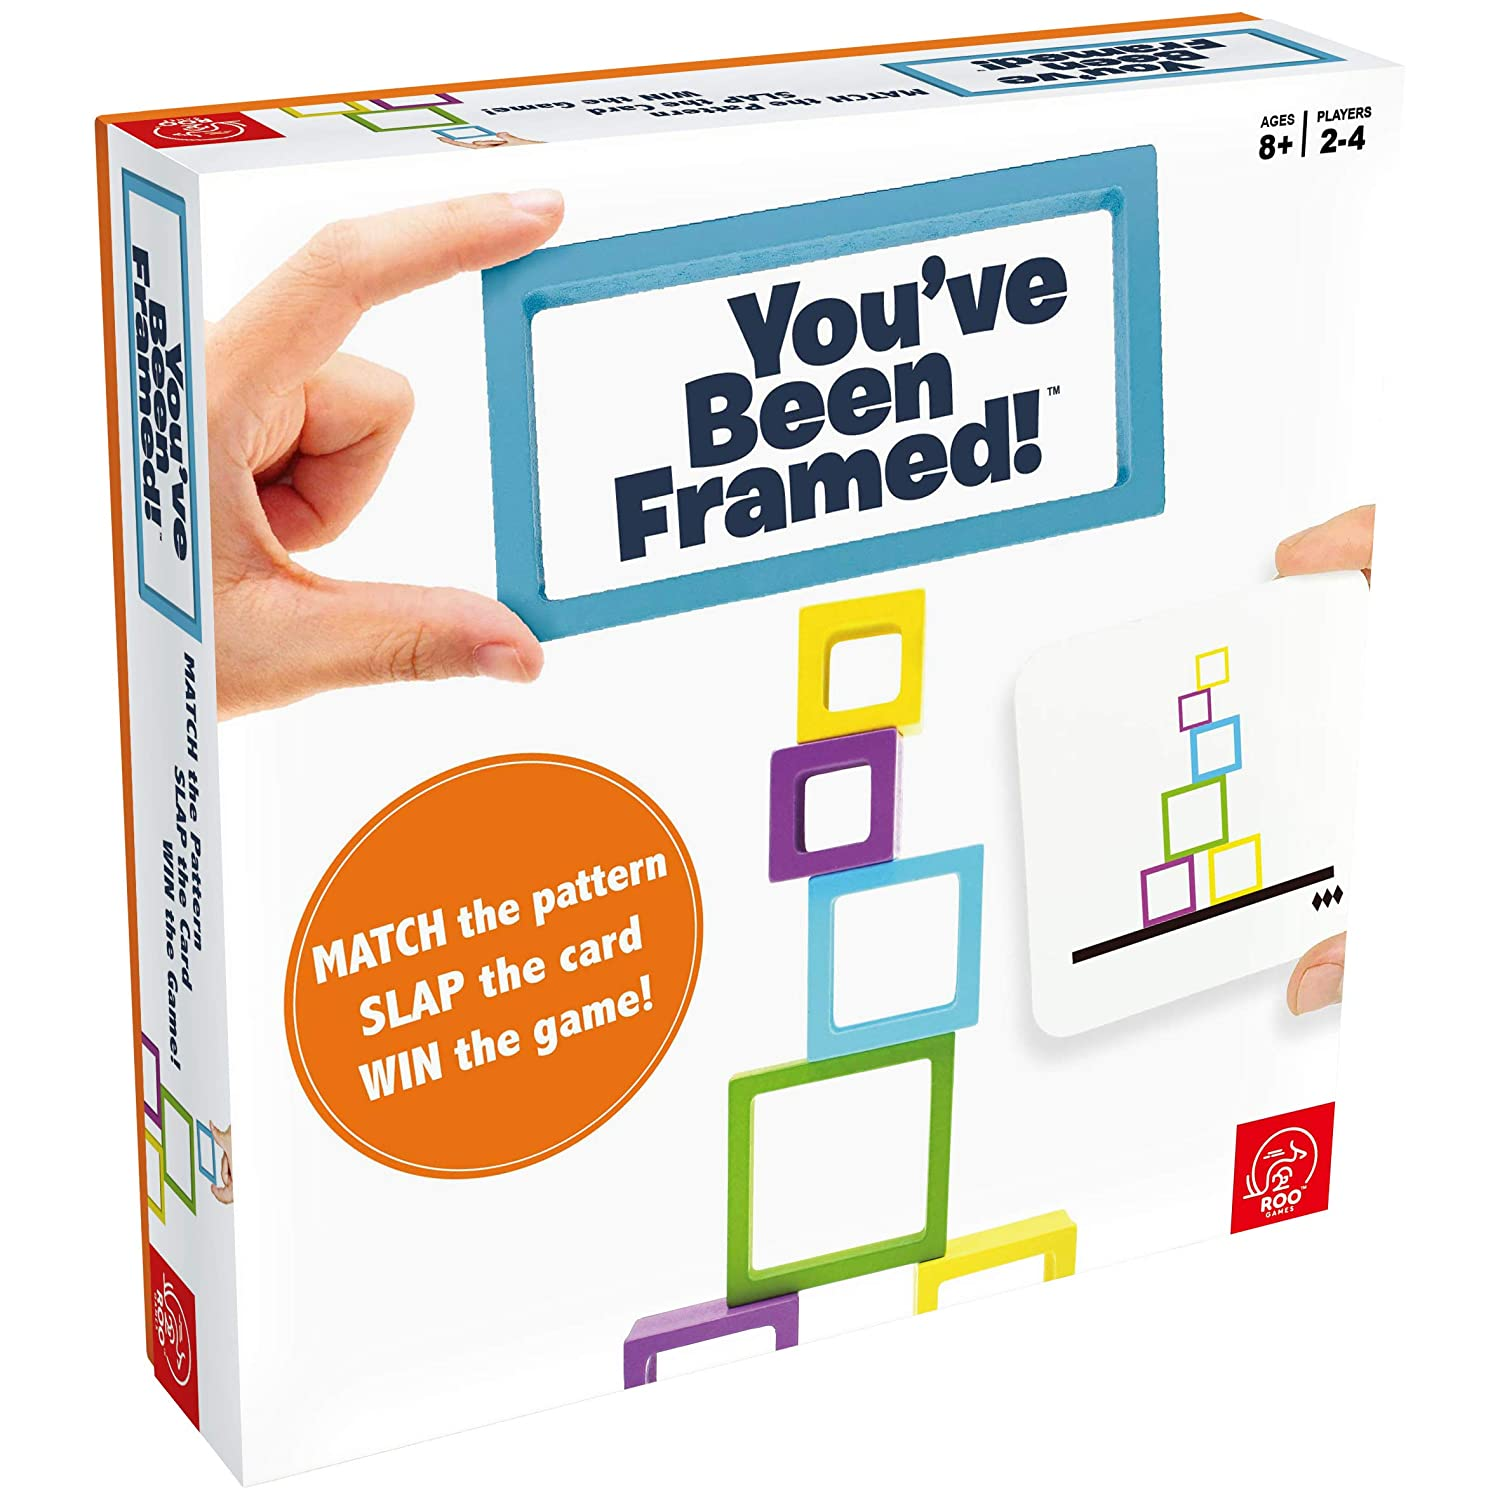 ROO GAMES - PM16W You've Been Framed! - Fast-Paced Stacking and Building Game - for Ages 8+ - Match The Pattern, Slap The Card, Win!